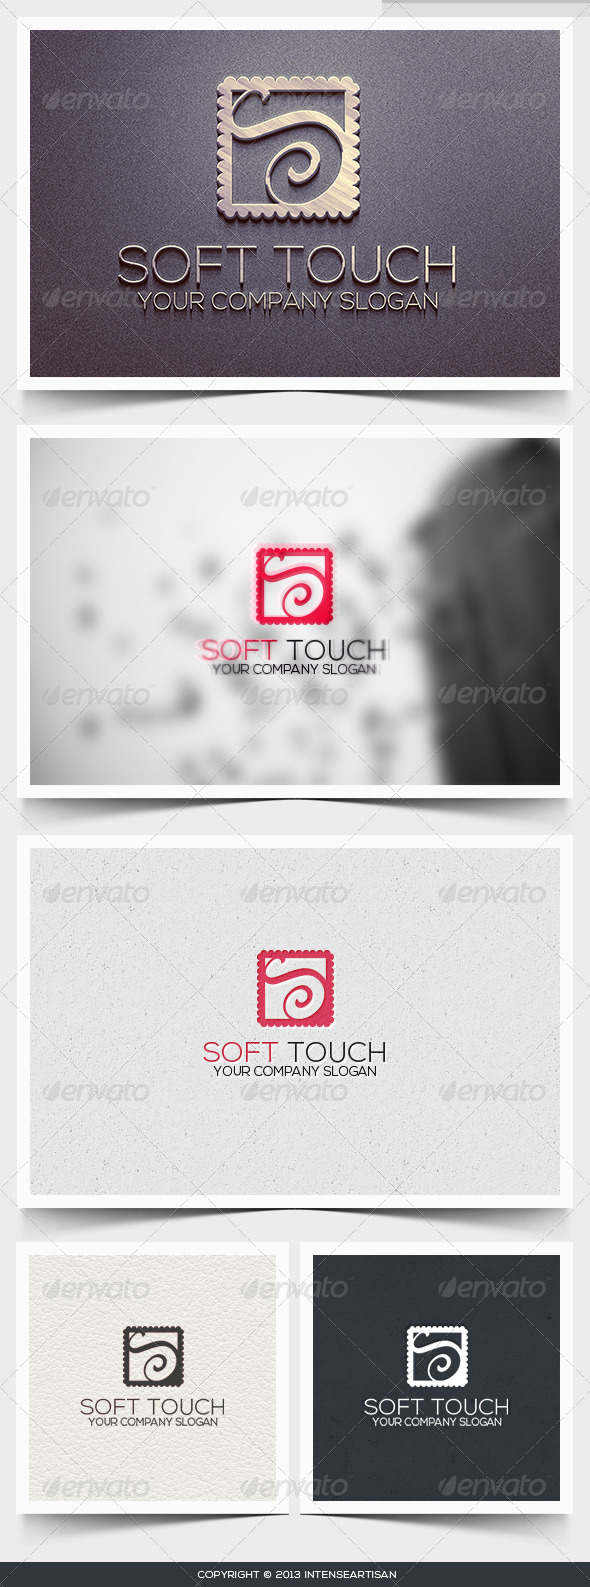 Soft Touch Logo Template - Letters Logo Templates